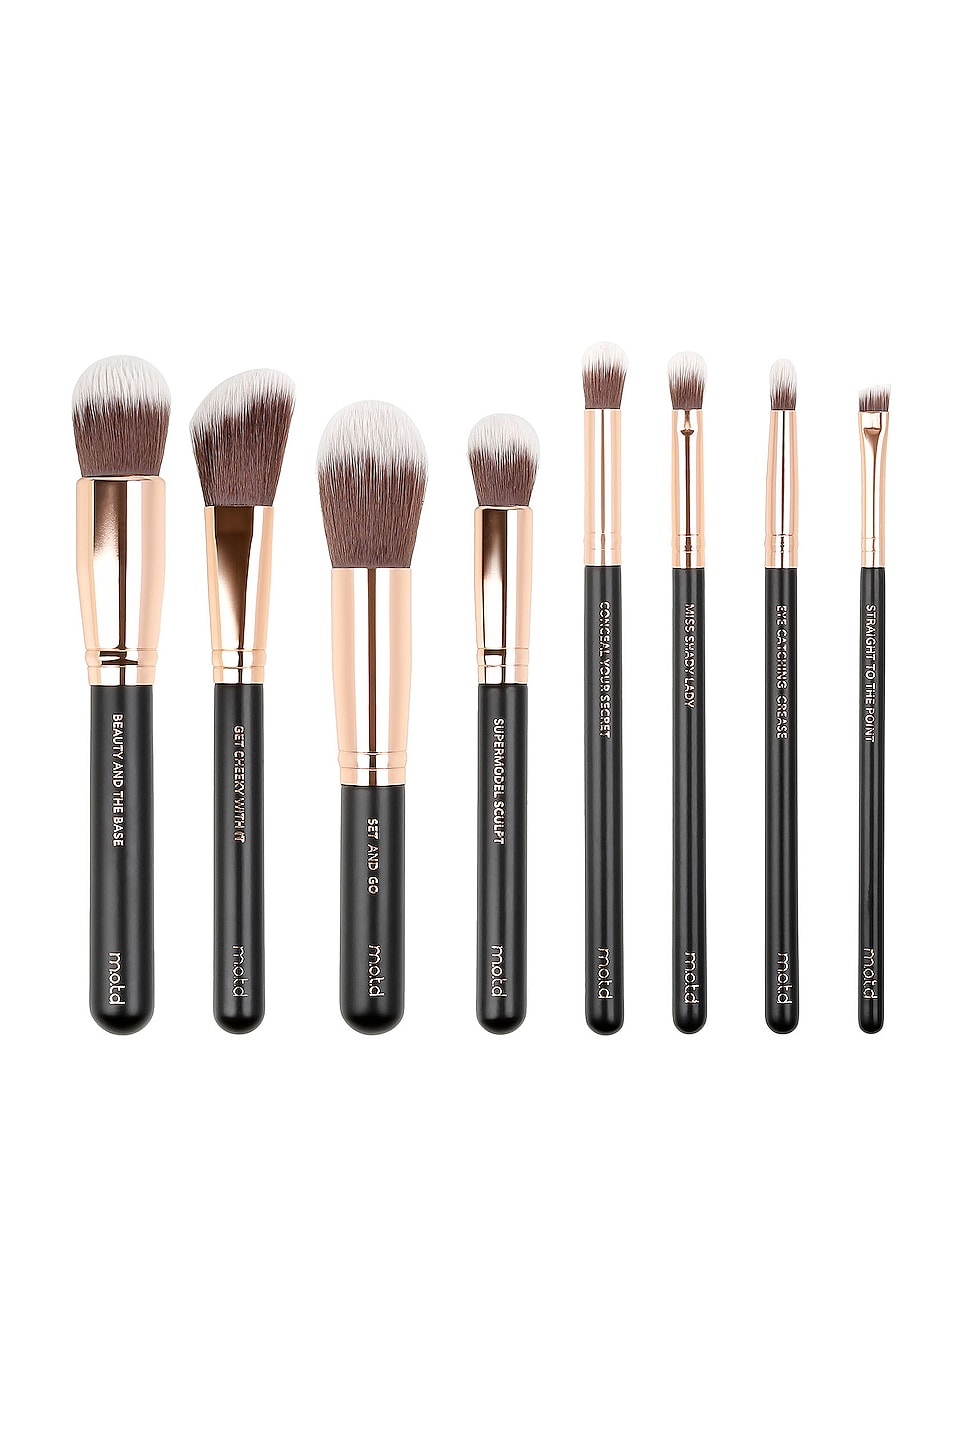 M.O.T.D. Cosmetics Lux Vegan Make Up Brush Essentials in All